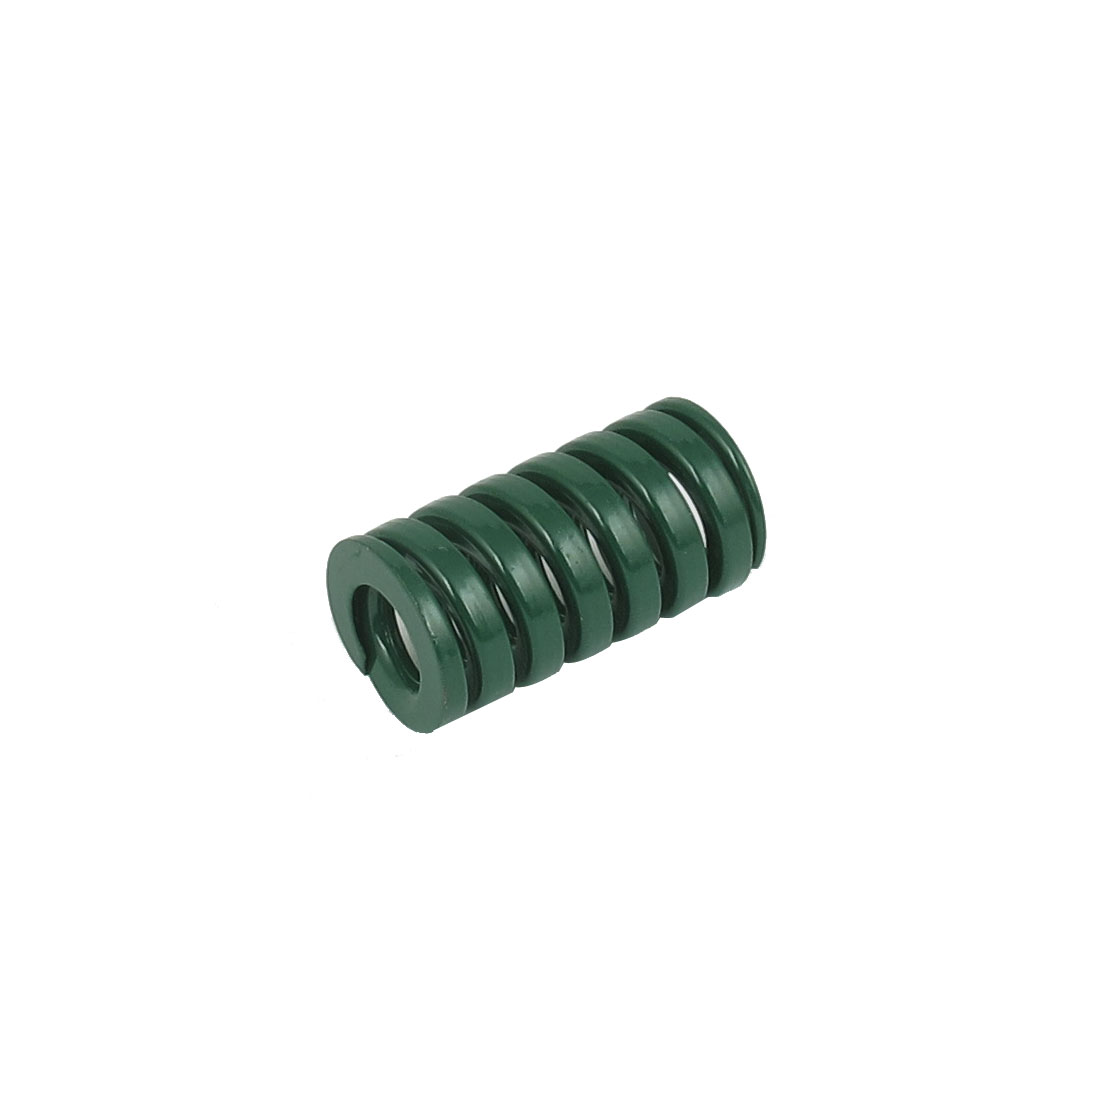 16mmx30mm Chromium Alloy Steel Heavy Load Die Spring Green